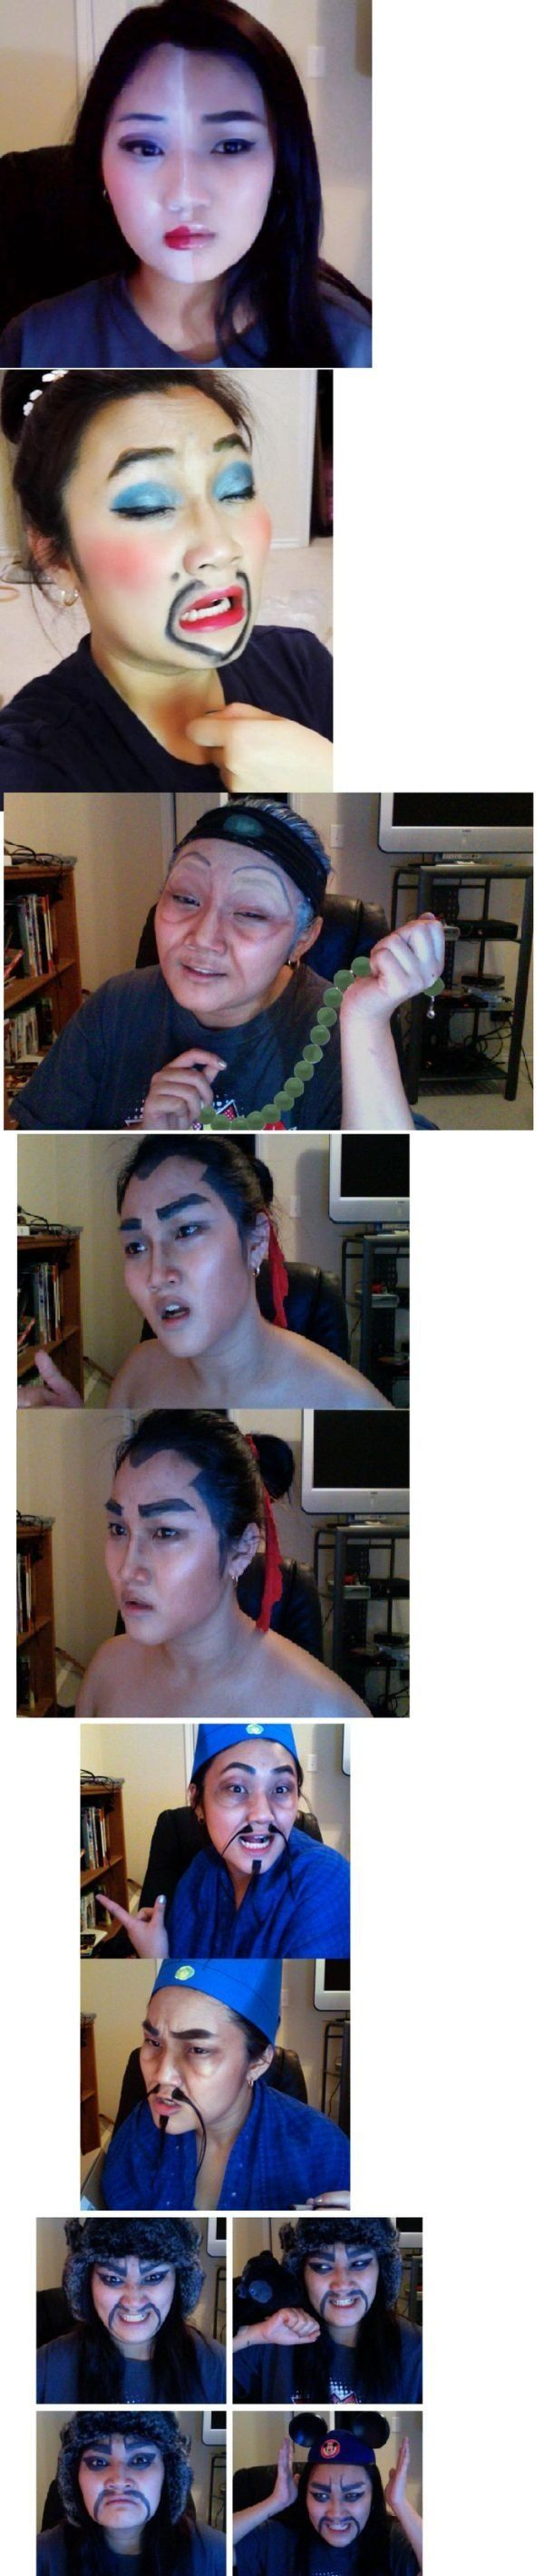 LMAO…..serious costume makeup skills. Recreating different Mulan characters. This is absolutely hilarious…  | followpics.co